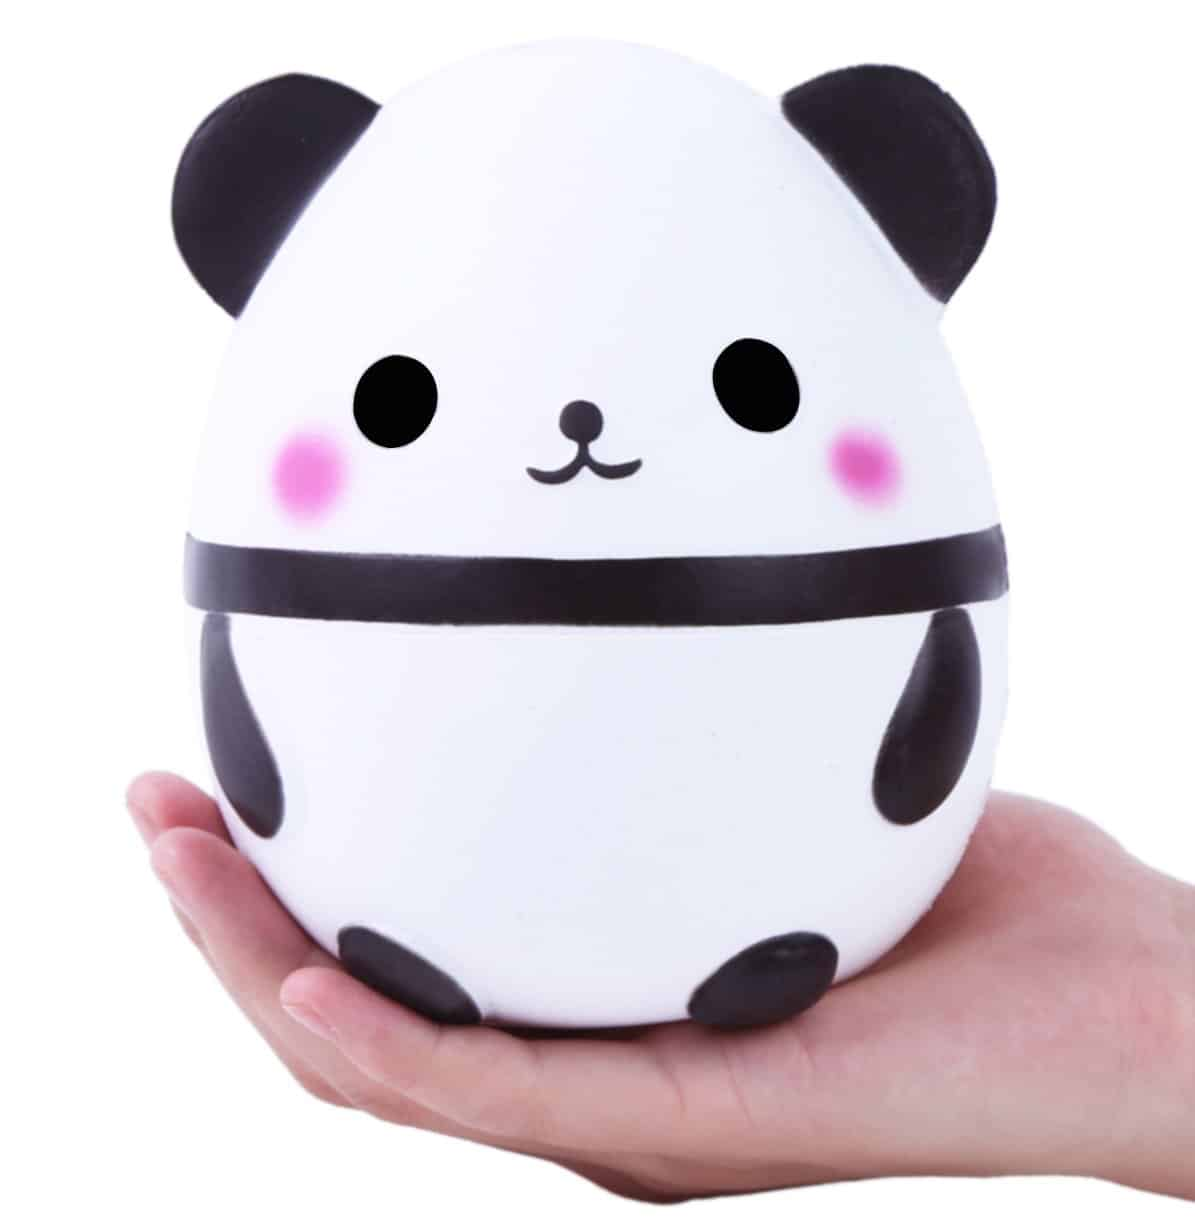 giant squishy panda